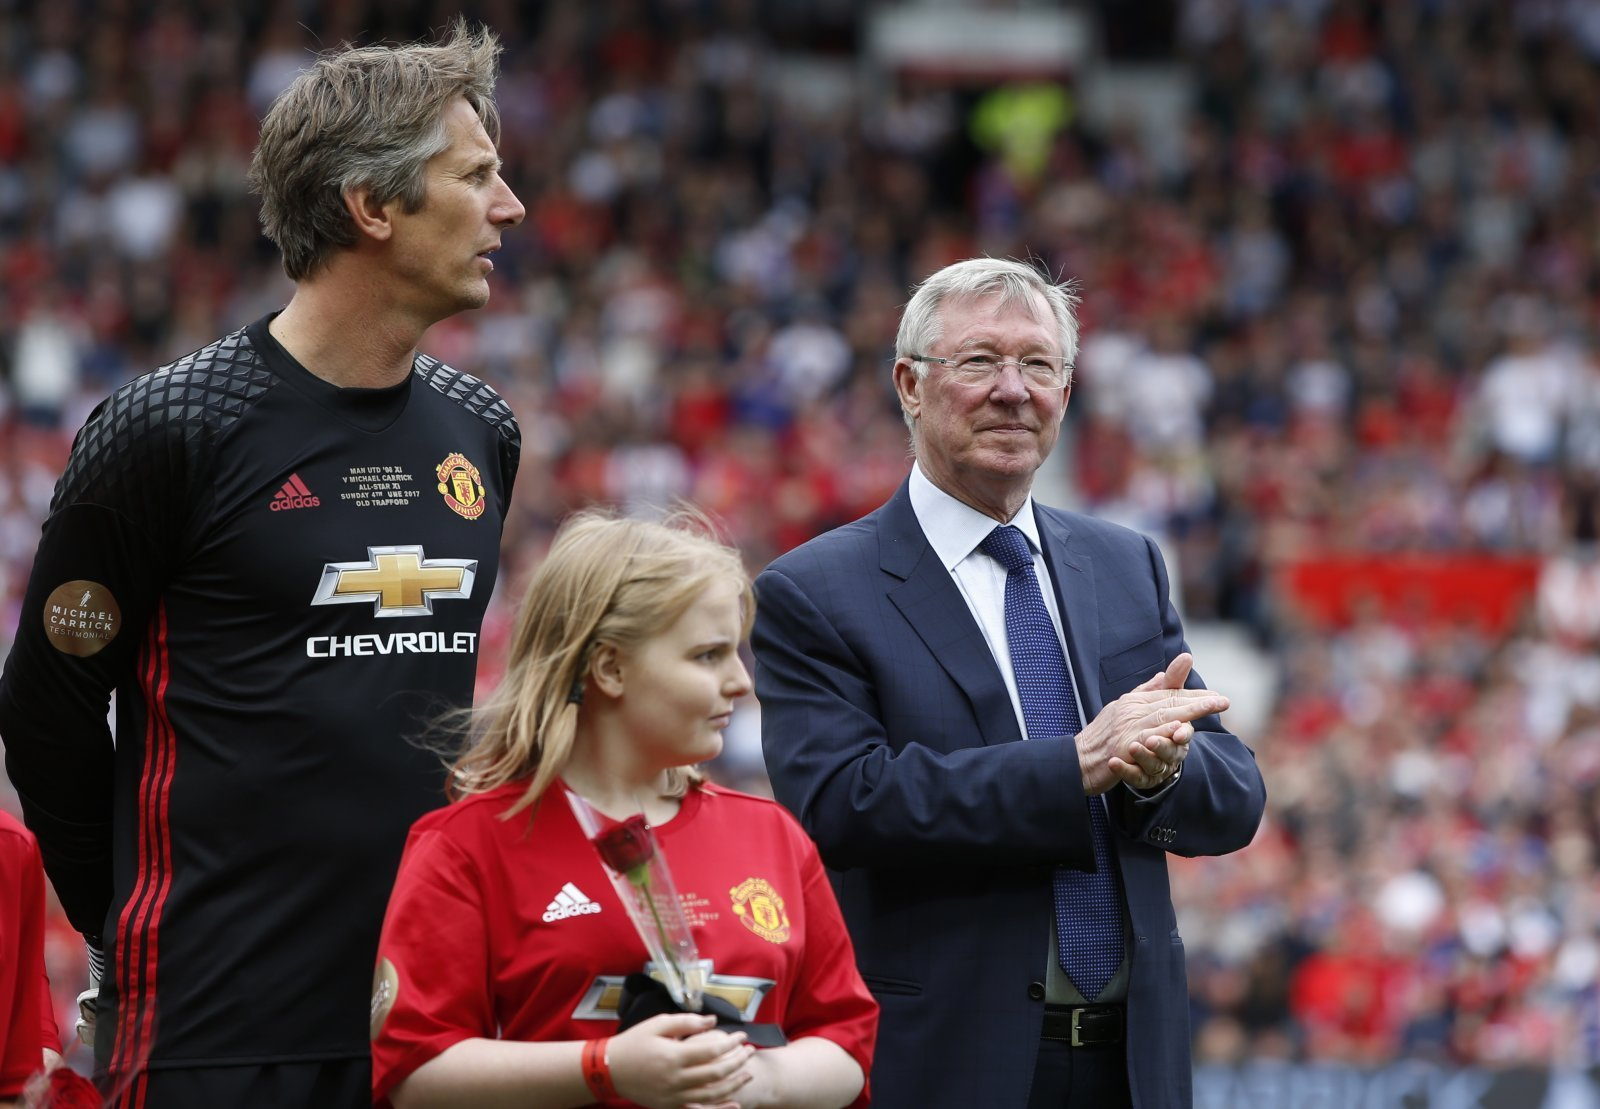 Introducing: Edwin van de Sar, Manchester United's future sporting director